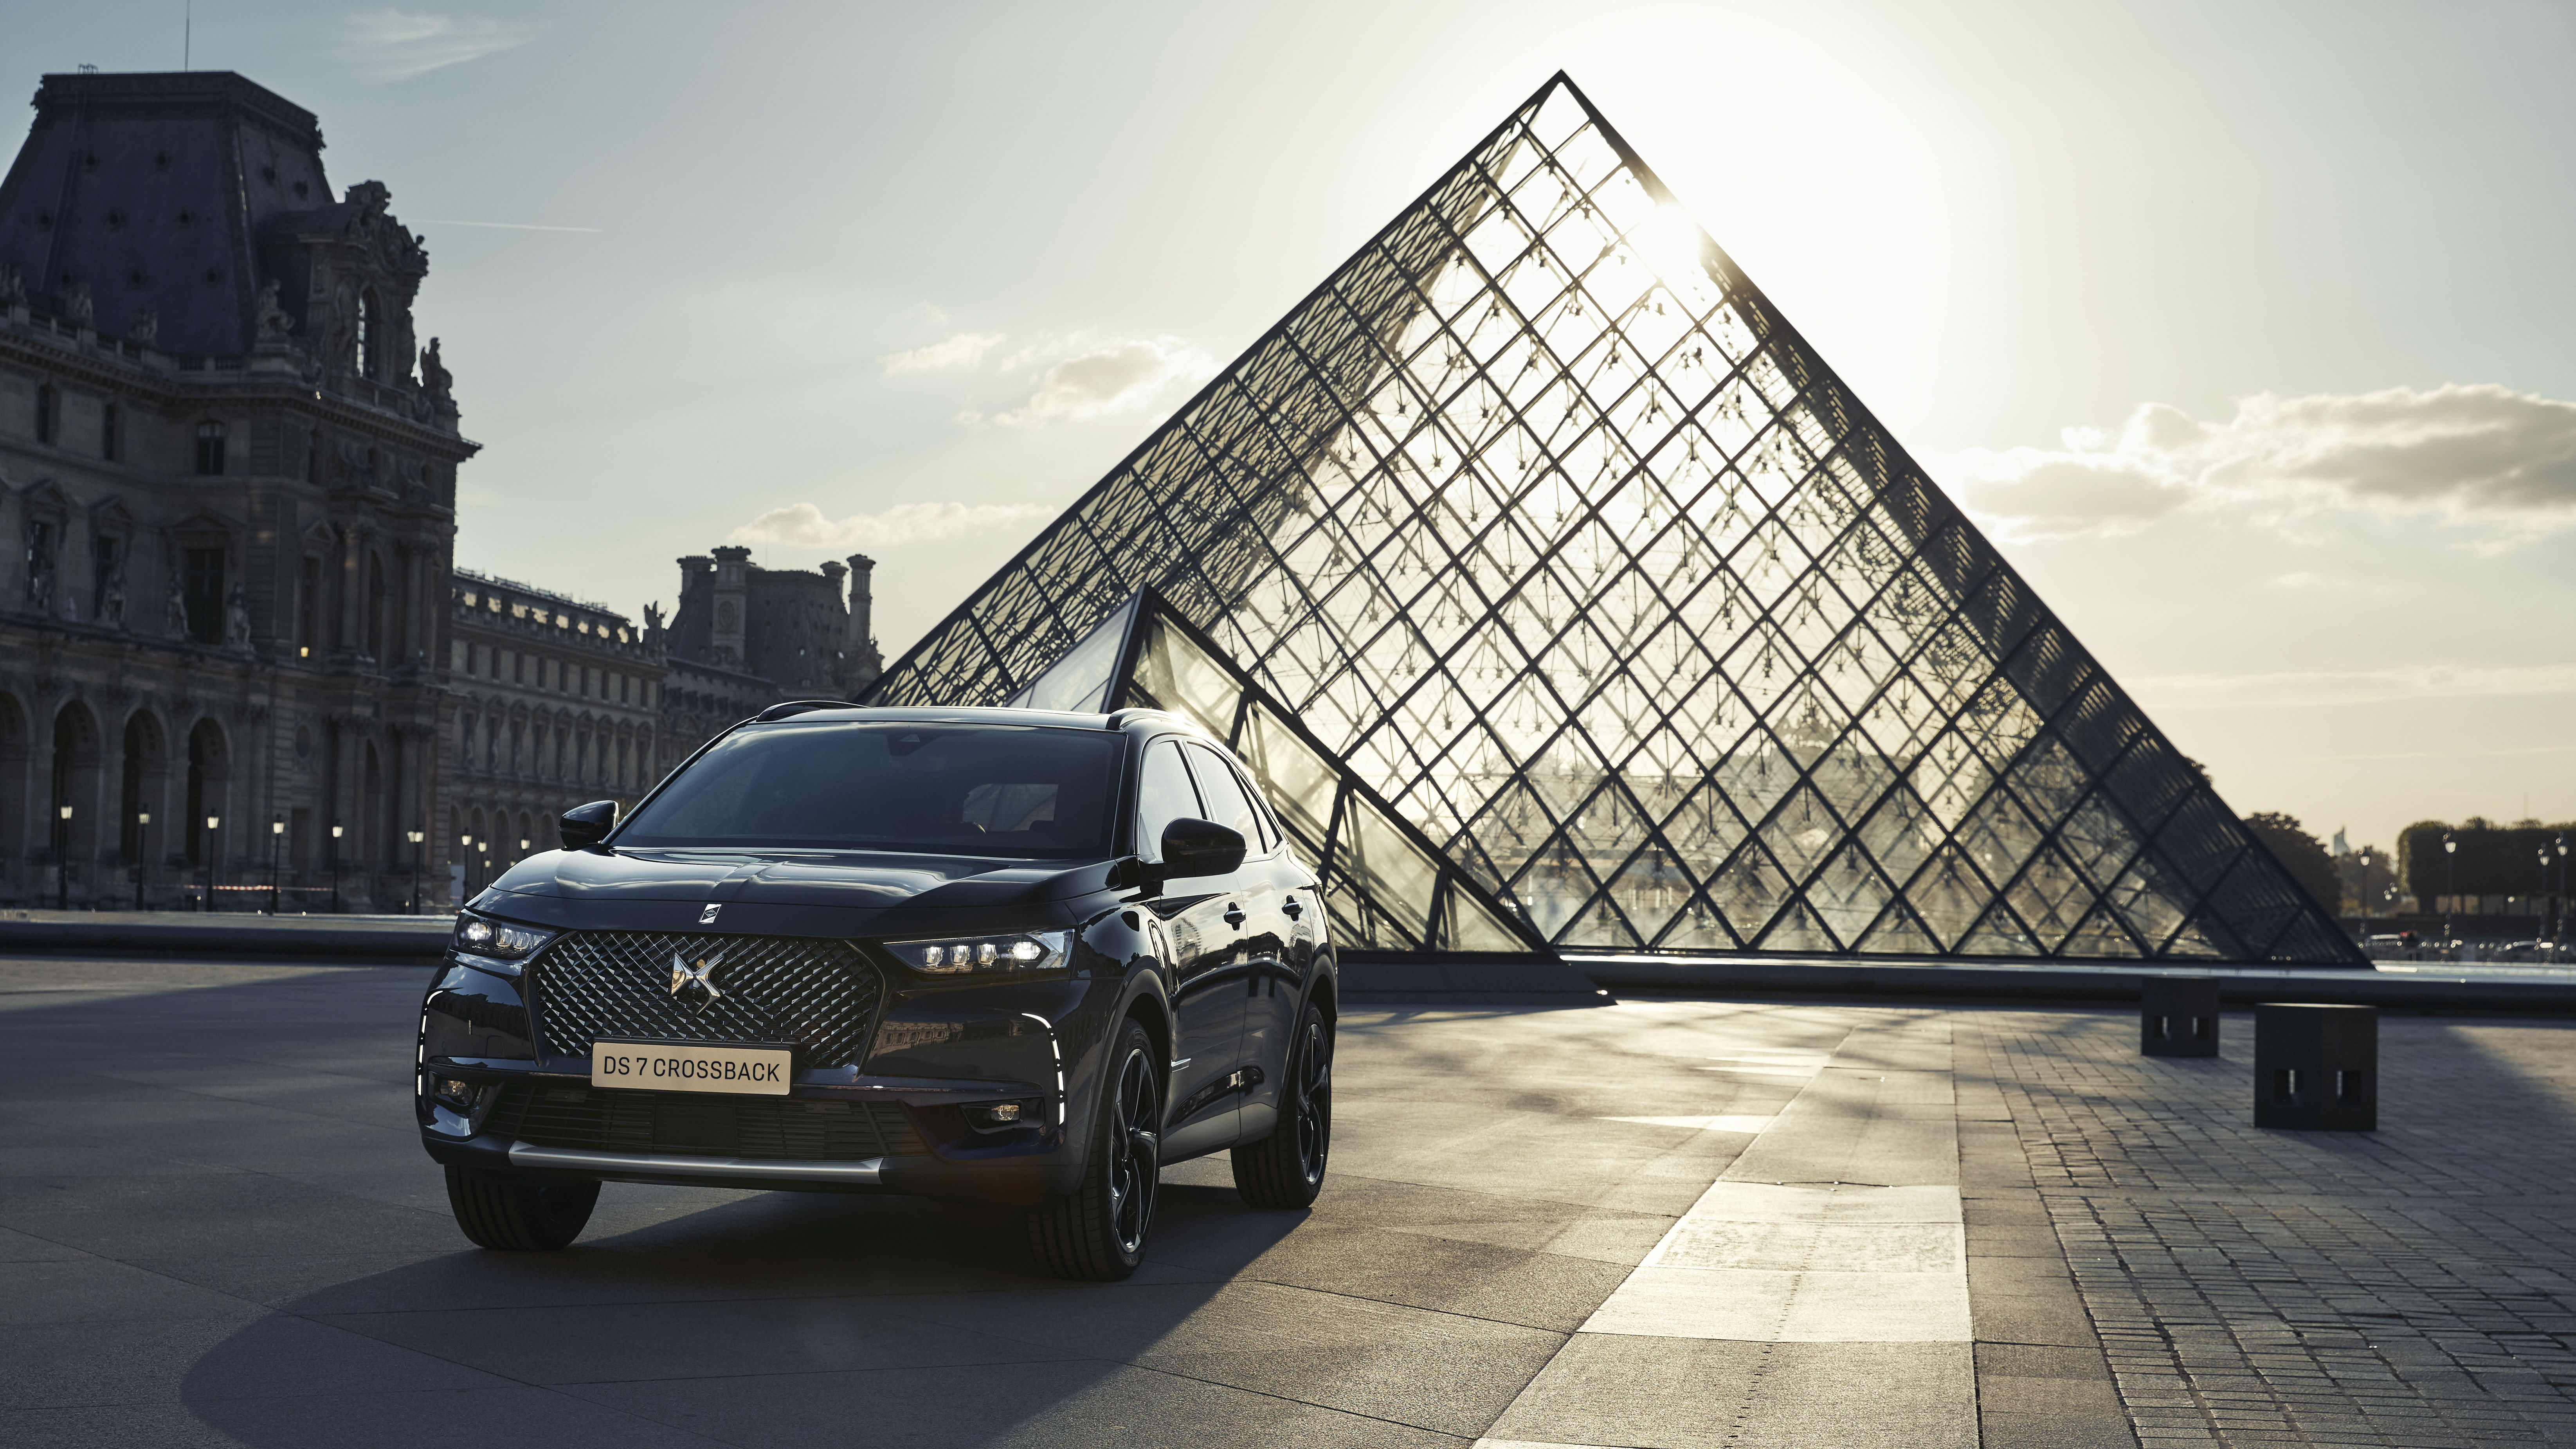 DS7 Crossback Louvre - Limited edition - Louvre